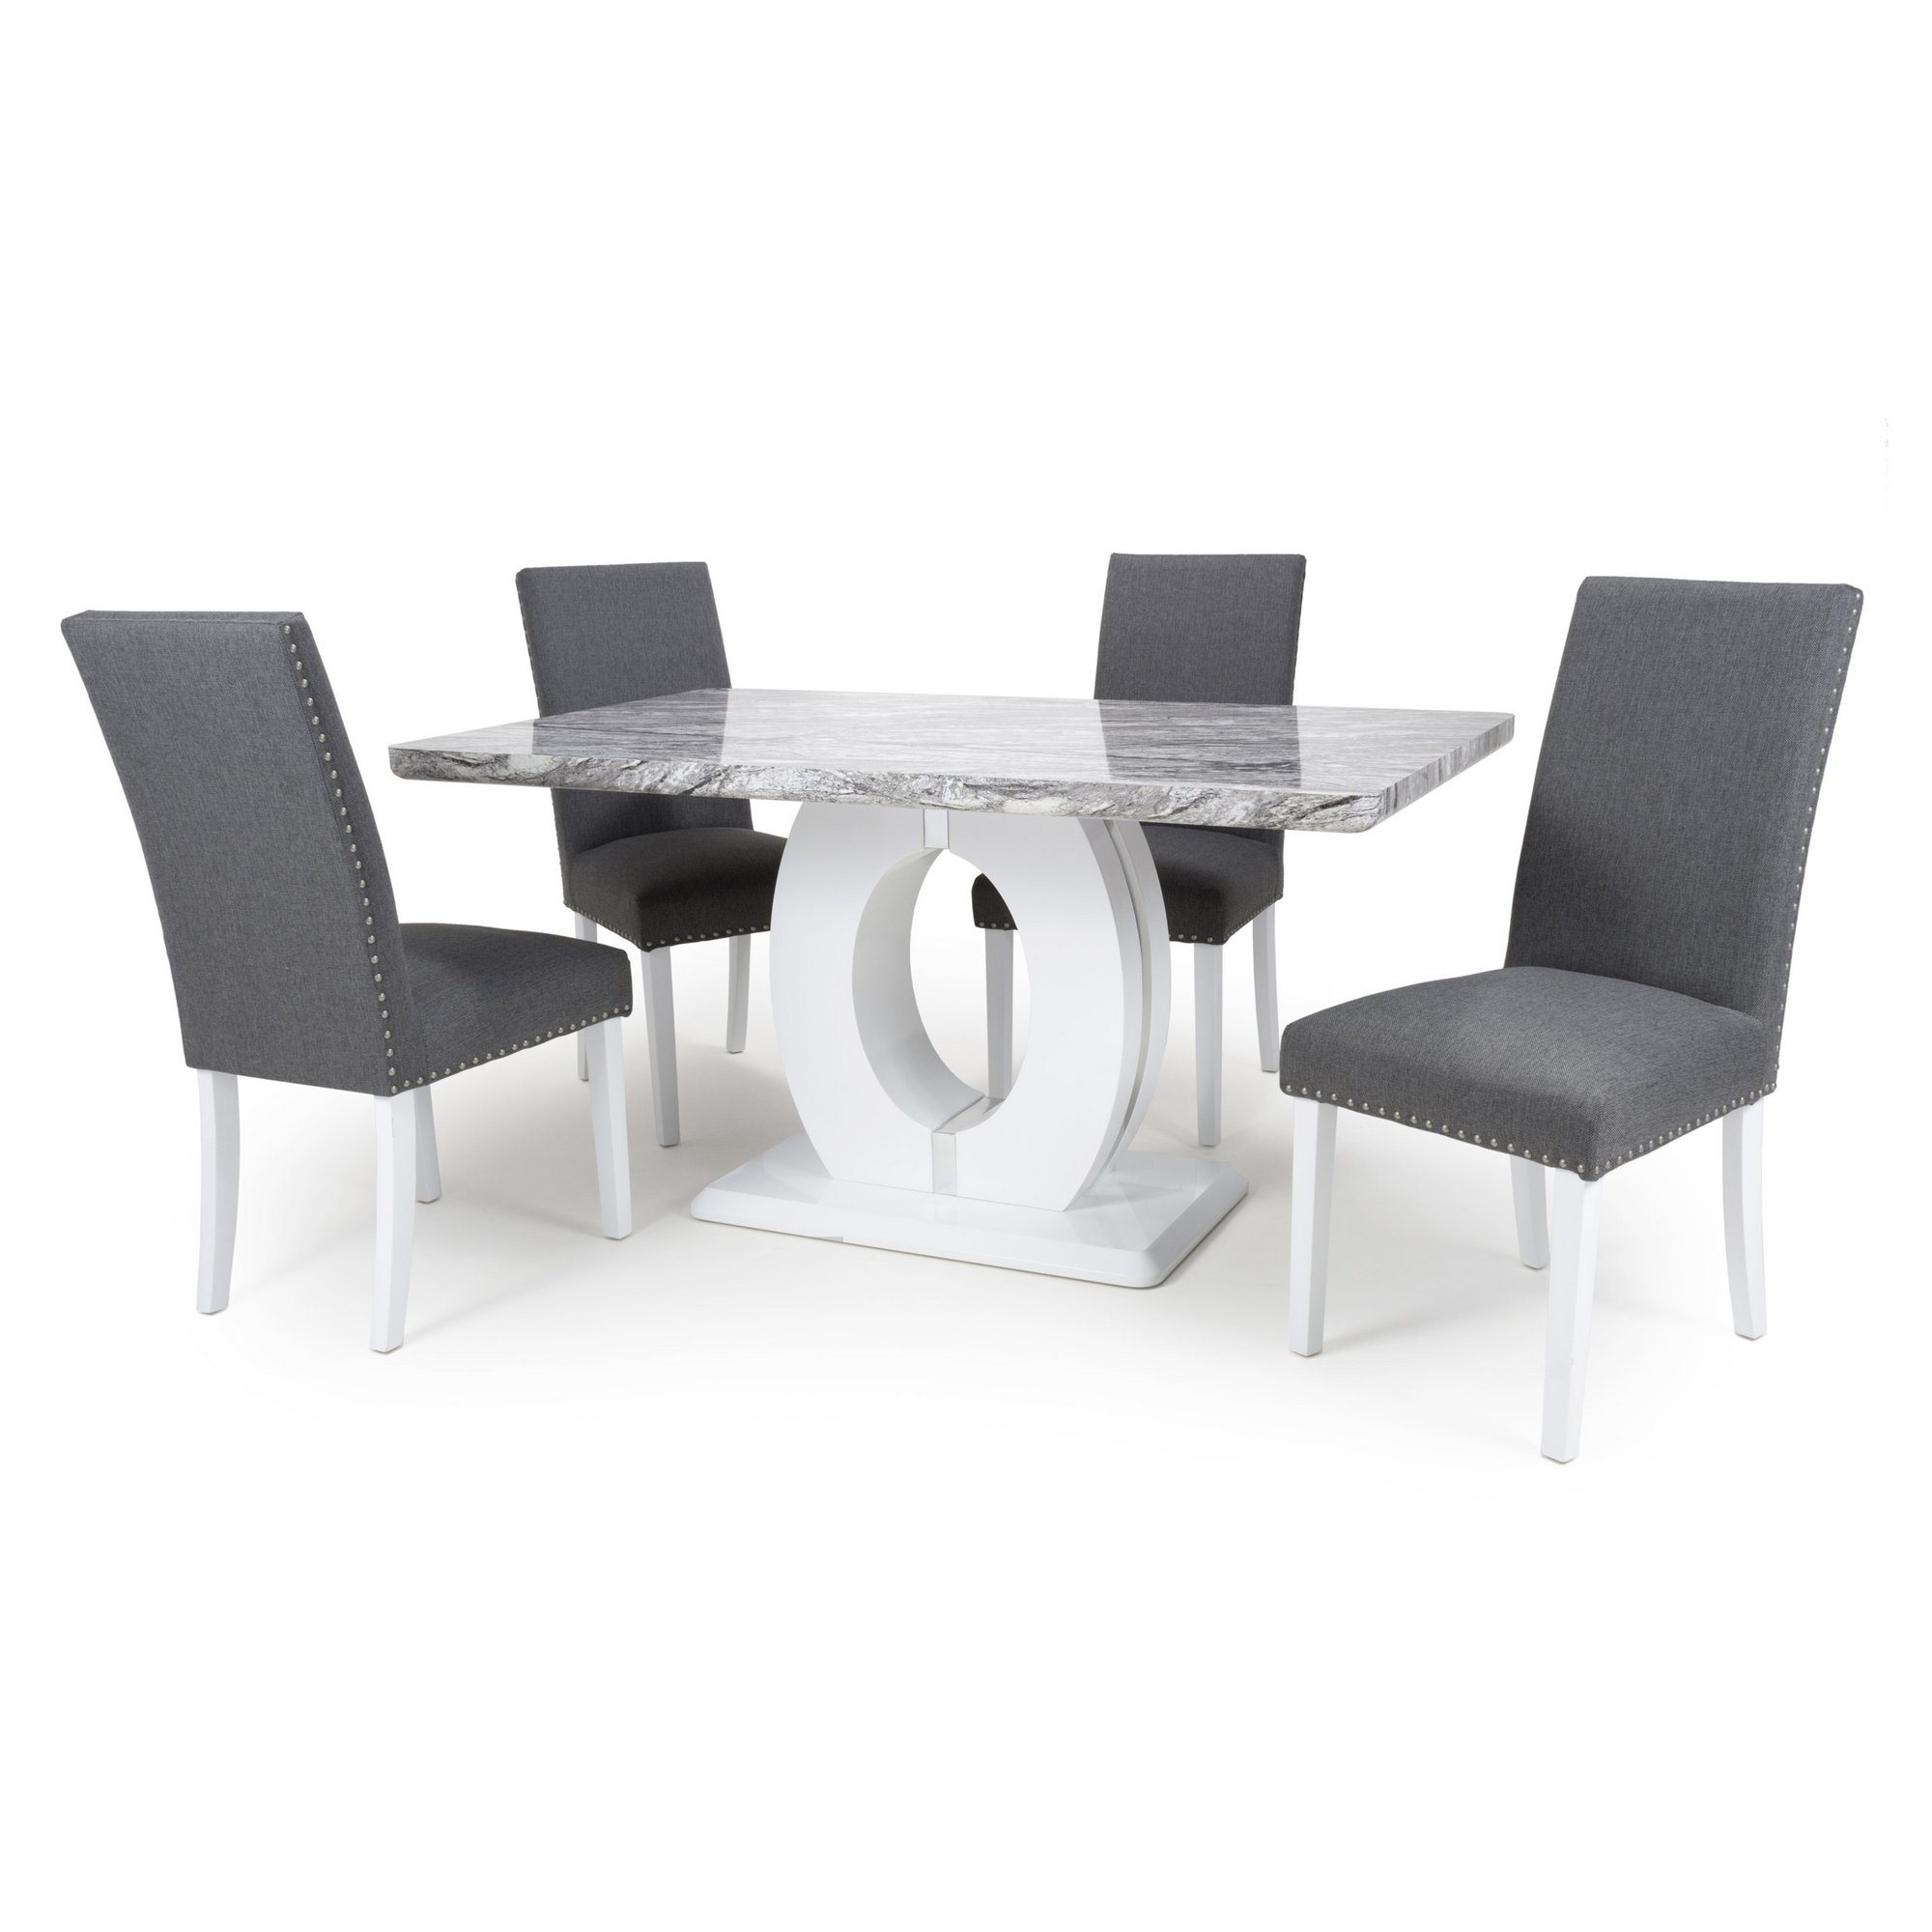 Image of Grey Marble Effect 5 Piece Medium Dining Set with Randall Chairs